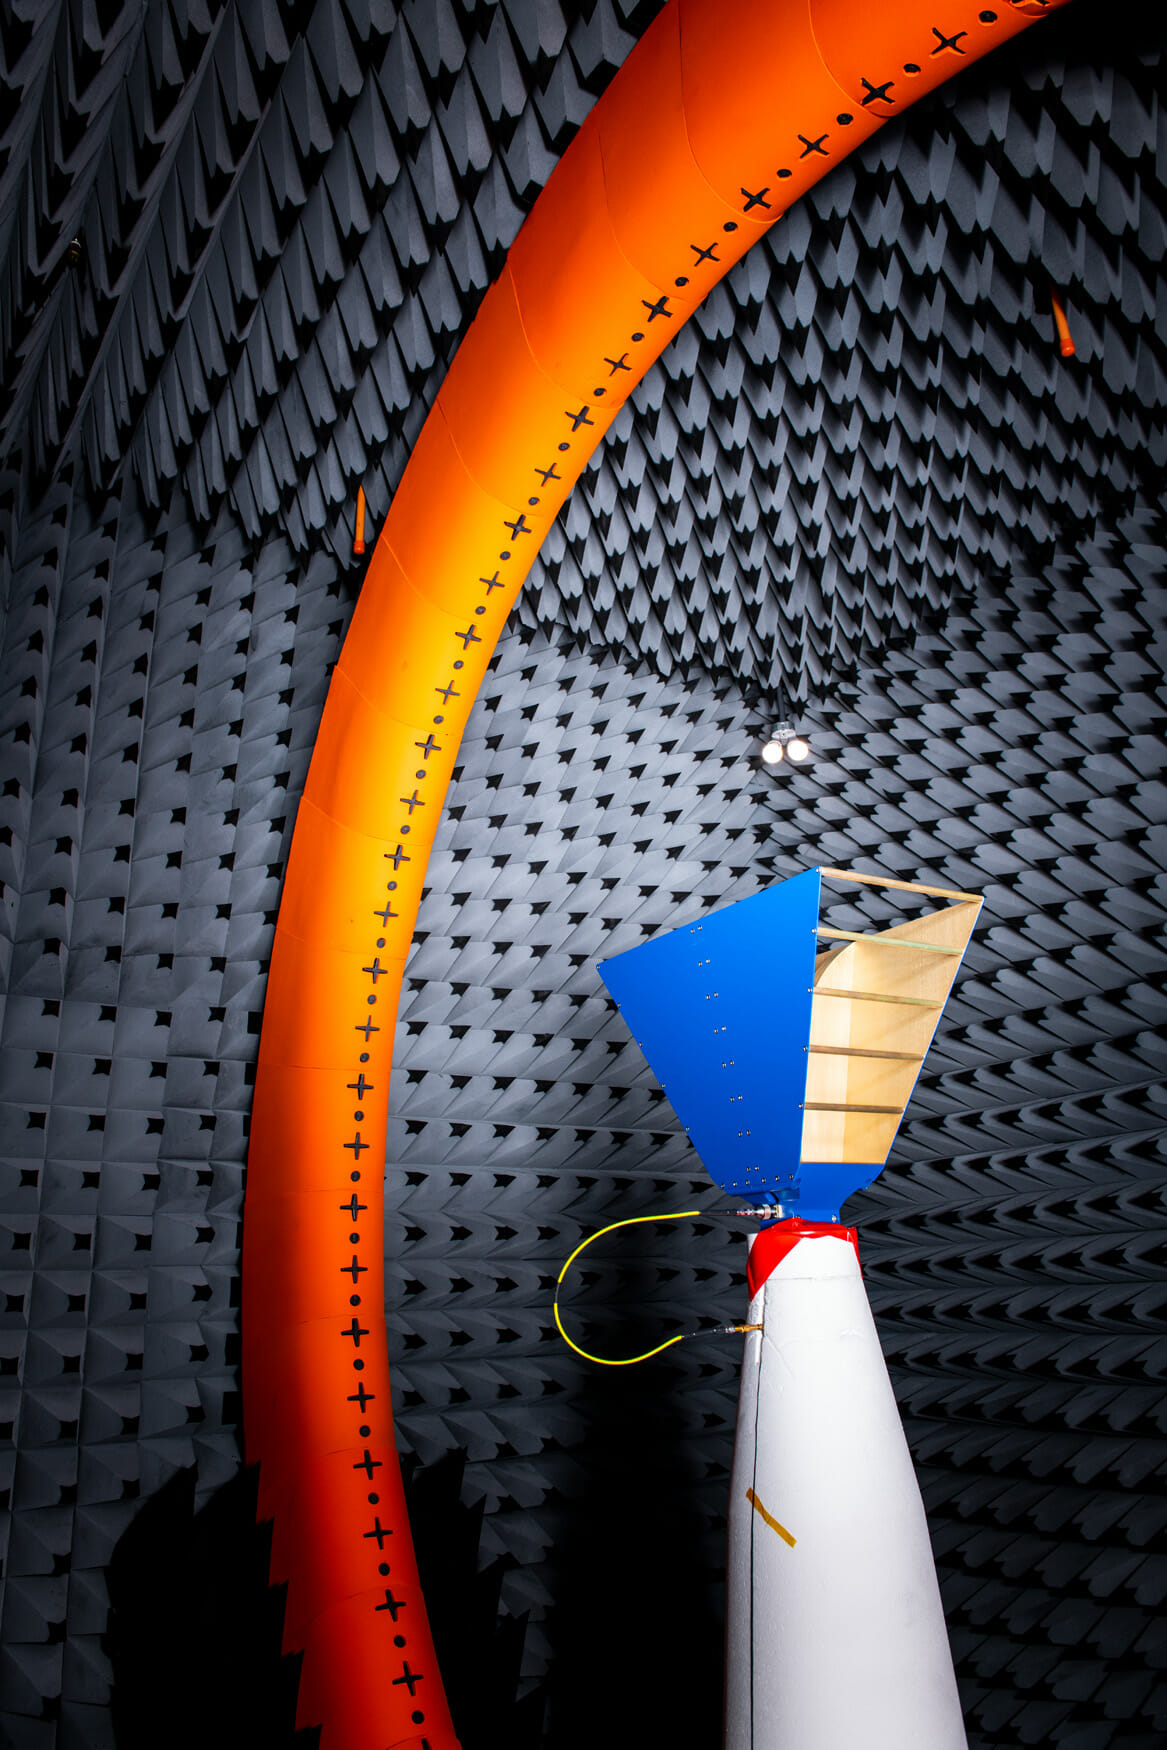 The inside of an anechoic chamber at the Facebook Connectivity Lab in Fremont, CA.